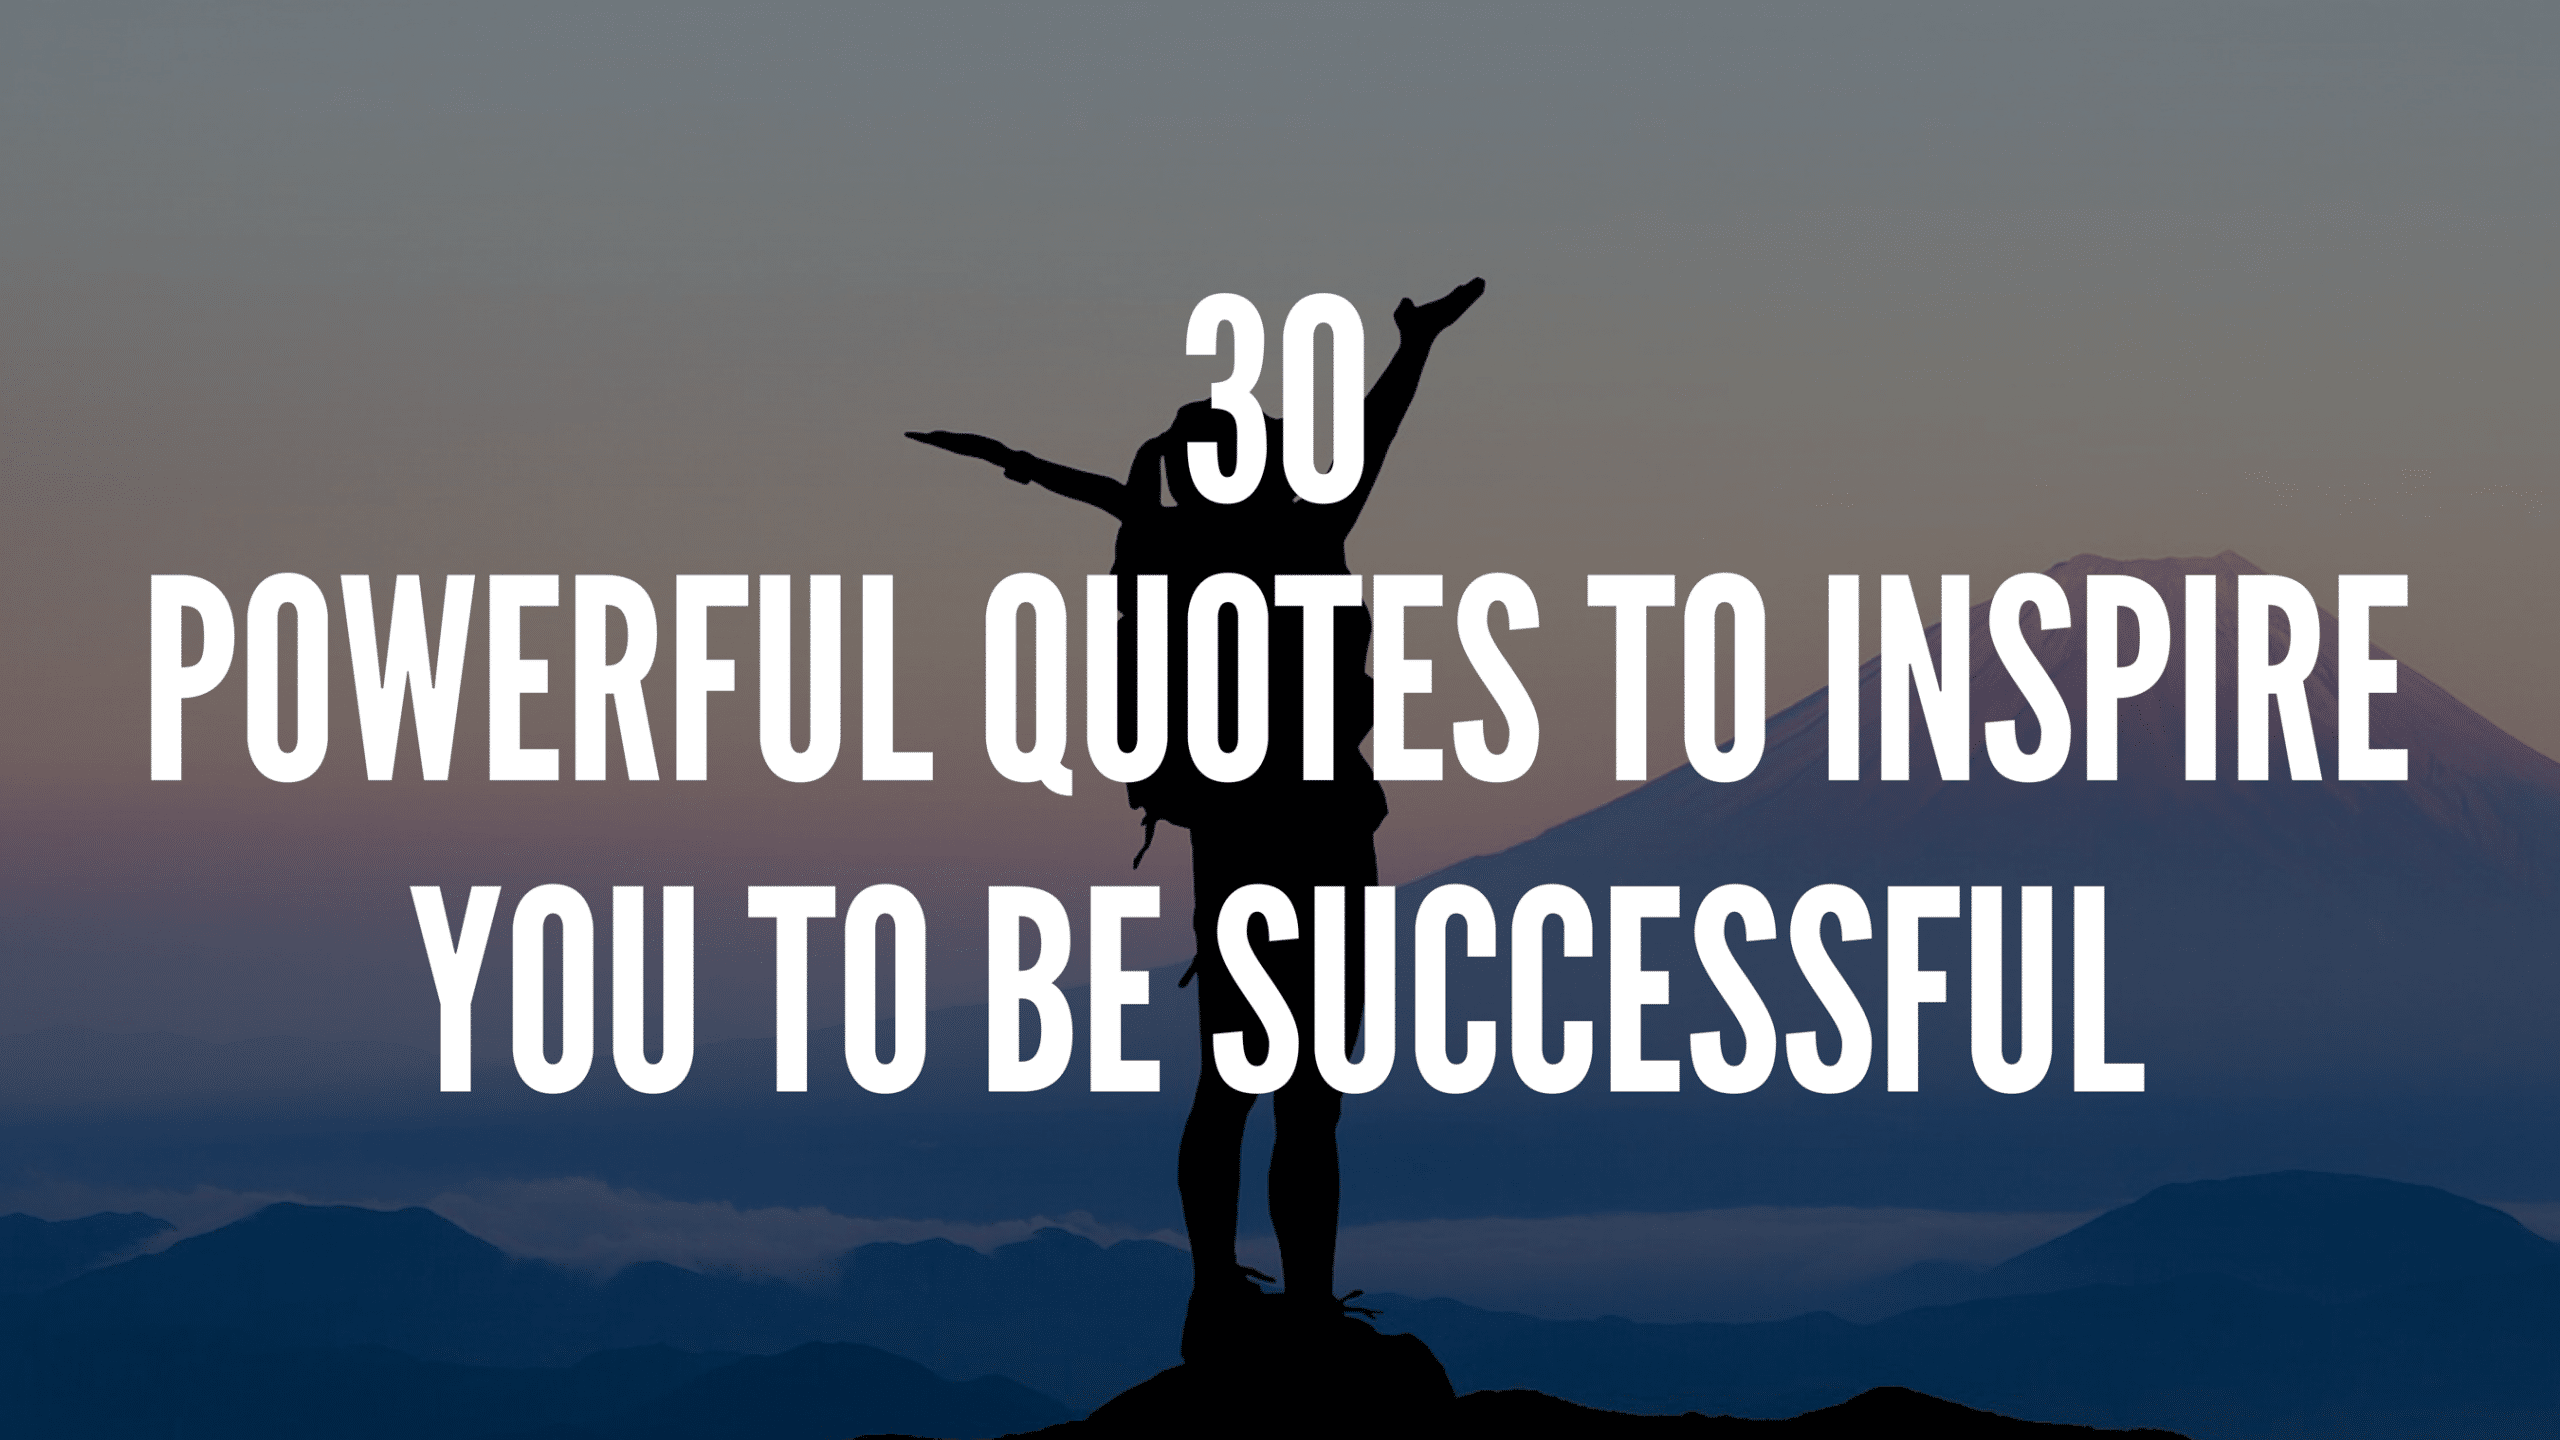 quotes to inspire to be successful